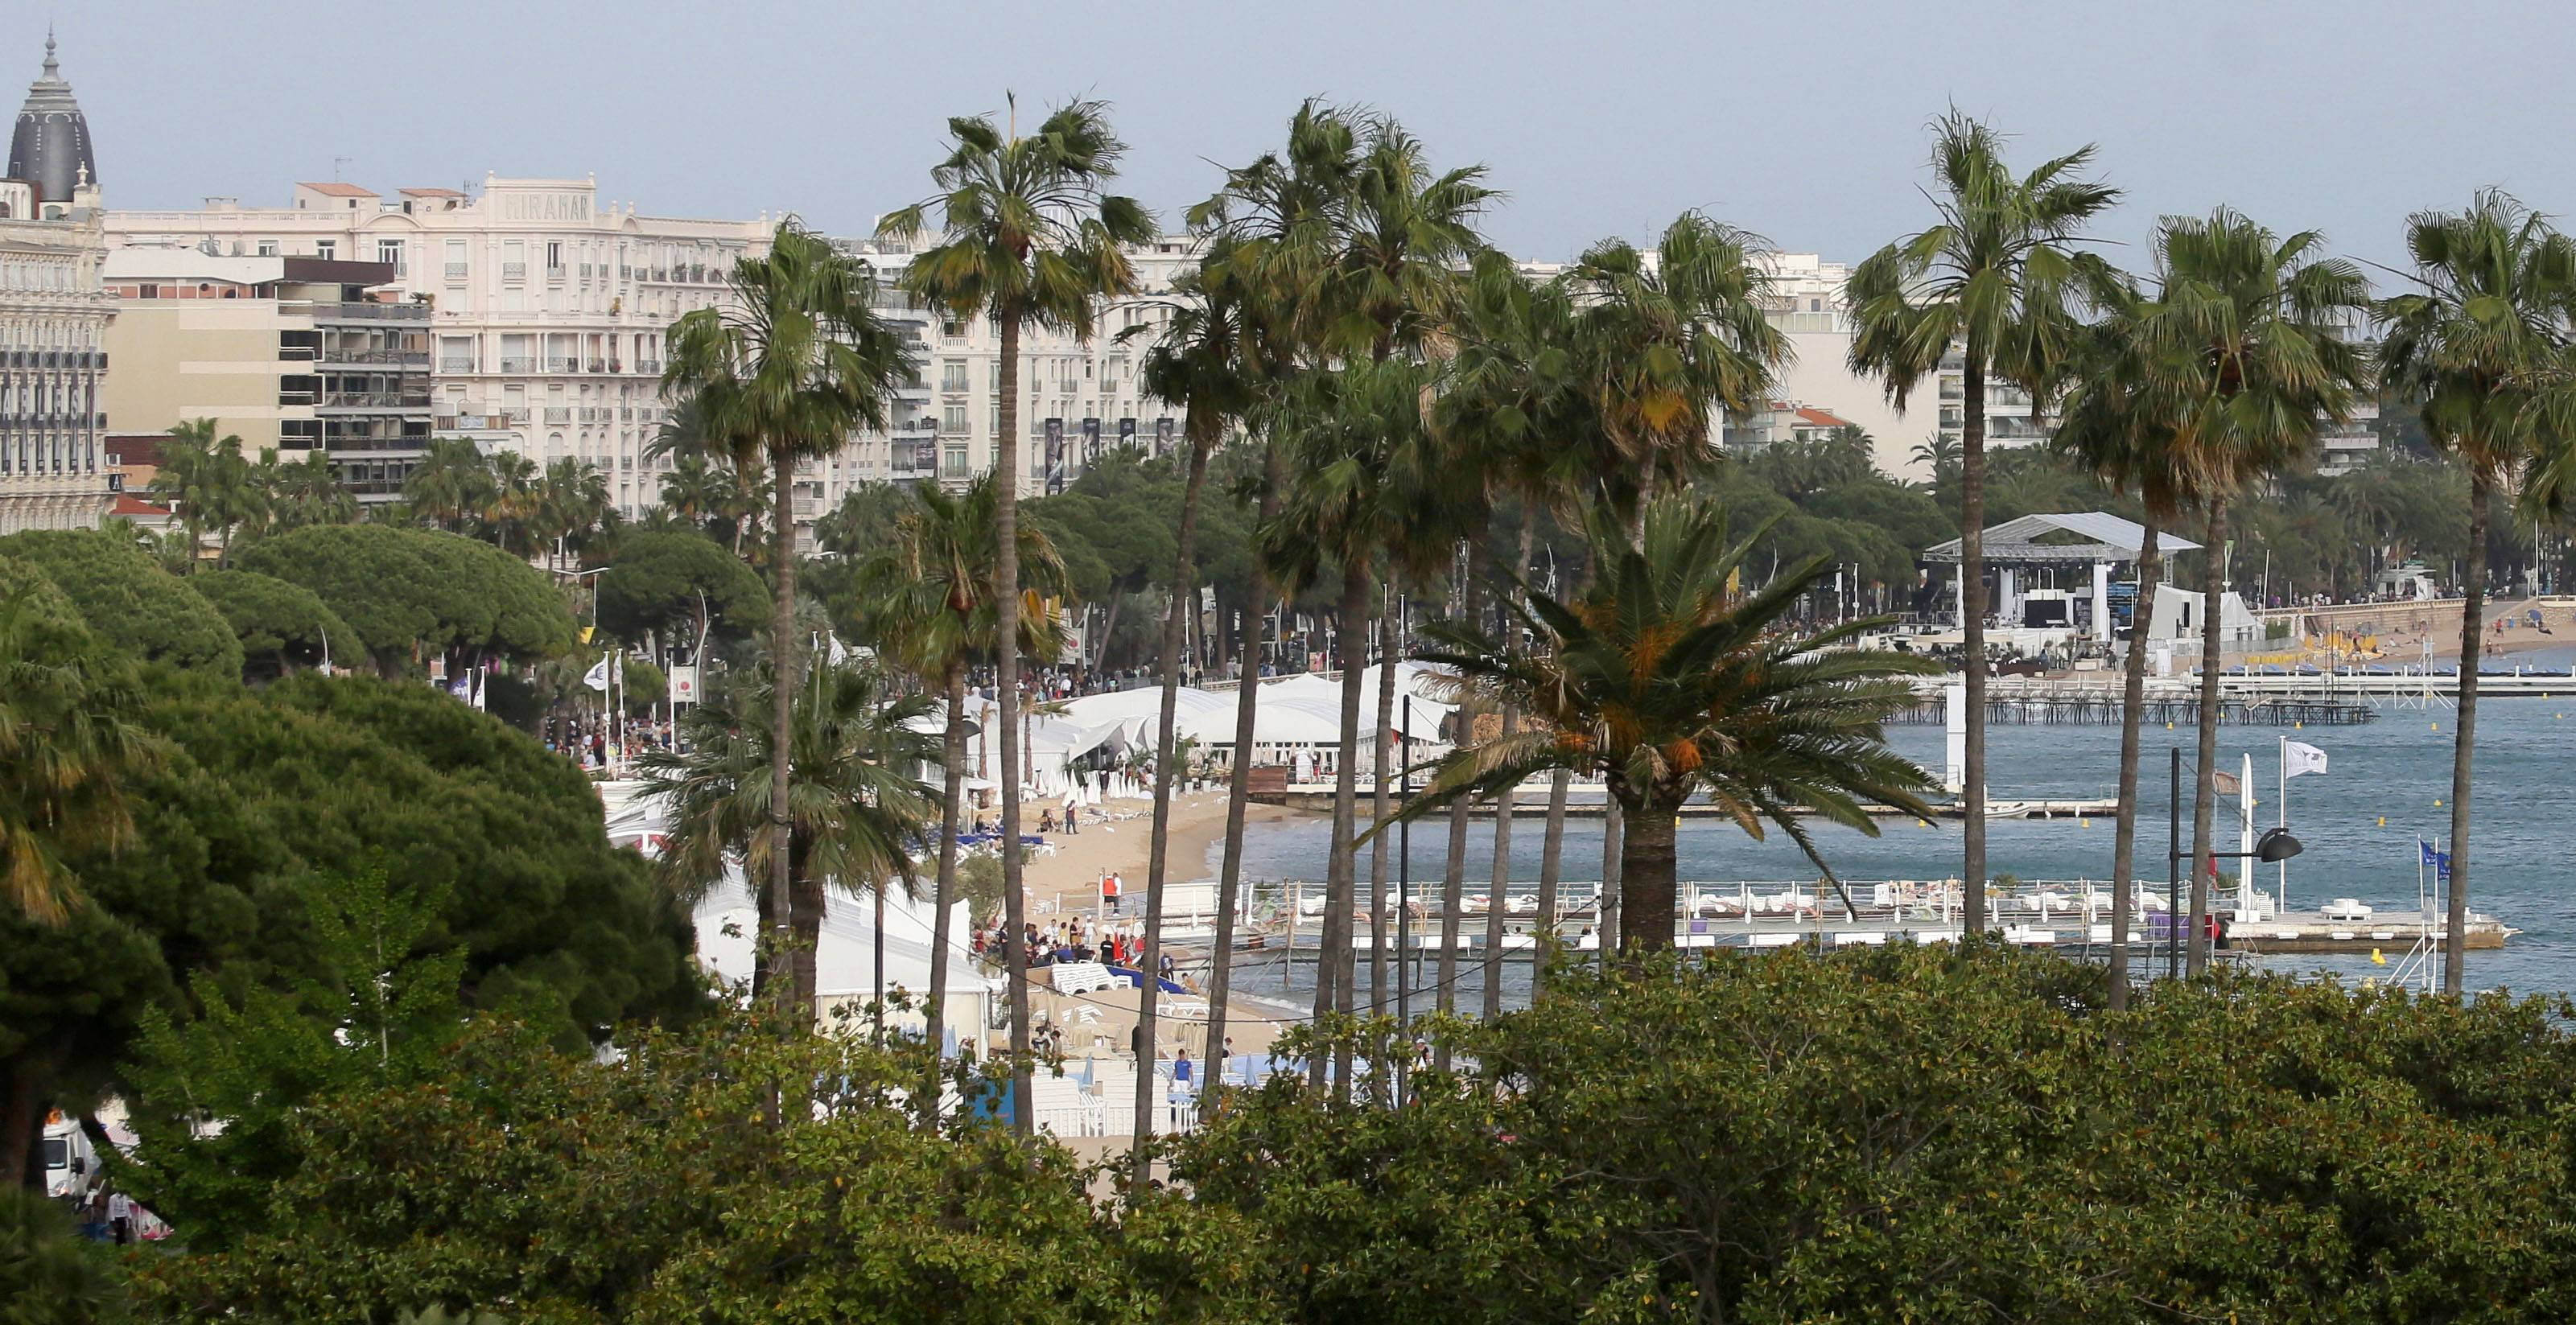 Some of the beaches near the Croisette in Cannes, southern France, are free.